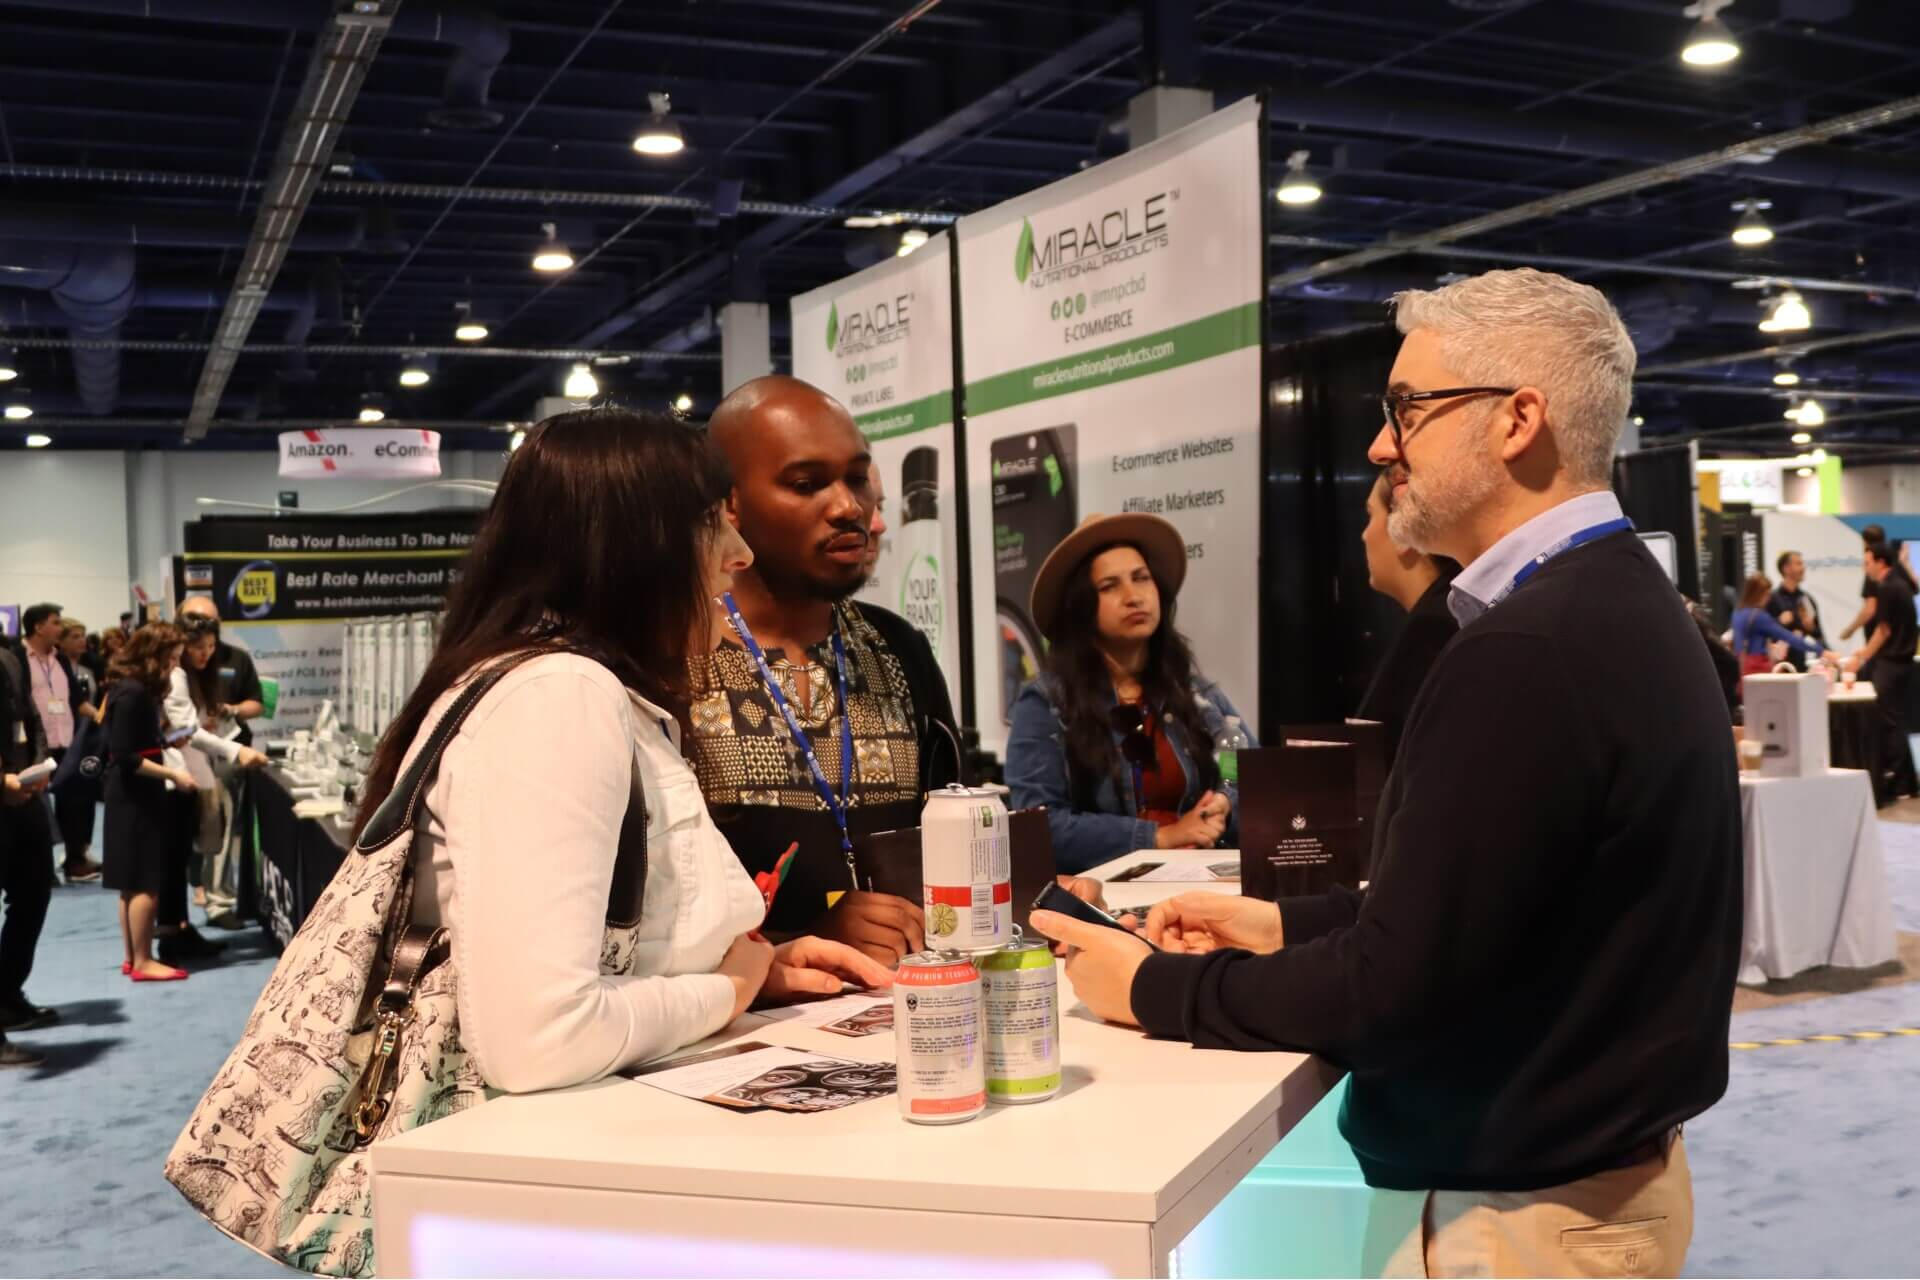 White label world expo las vegas 2021 exhibit | miracle nutritional products booth | white label world expo las vegas 2021